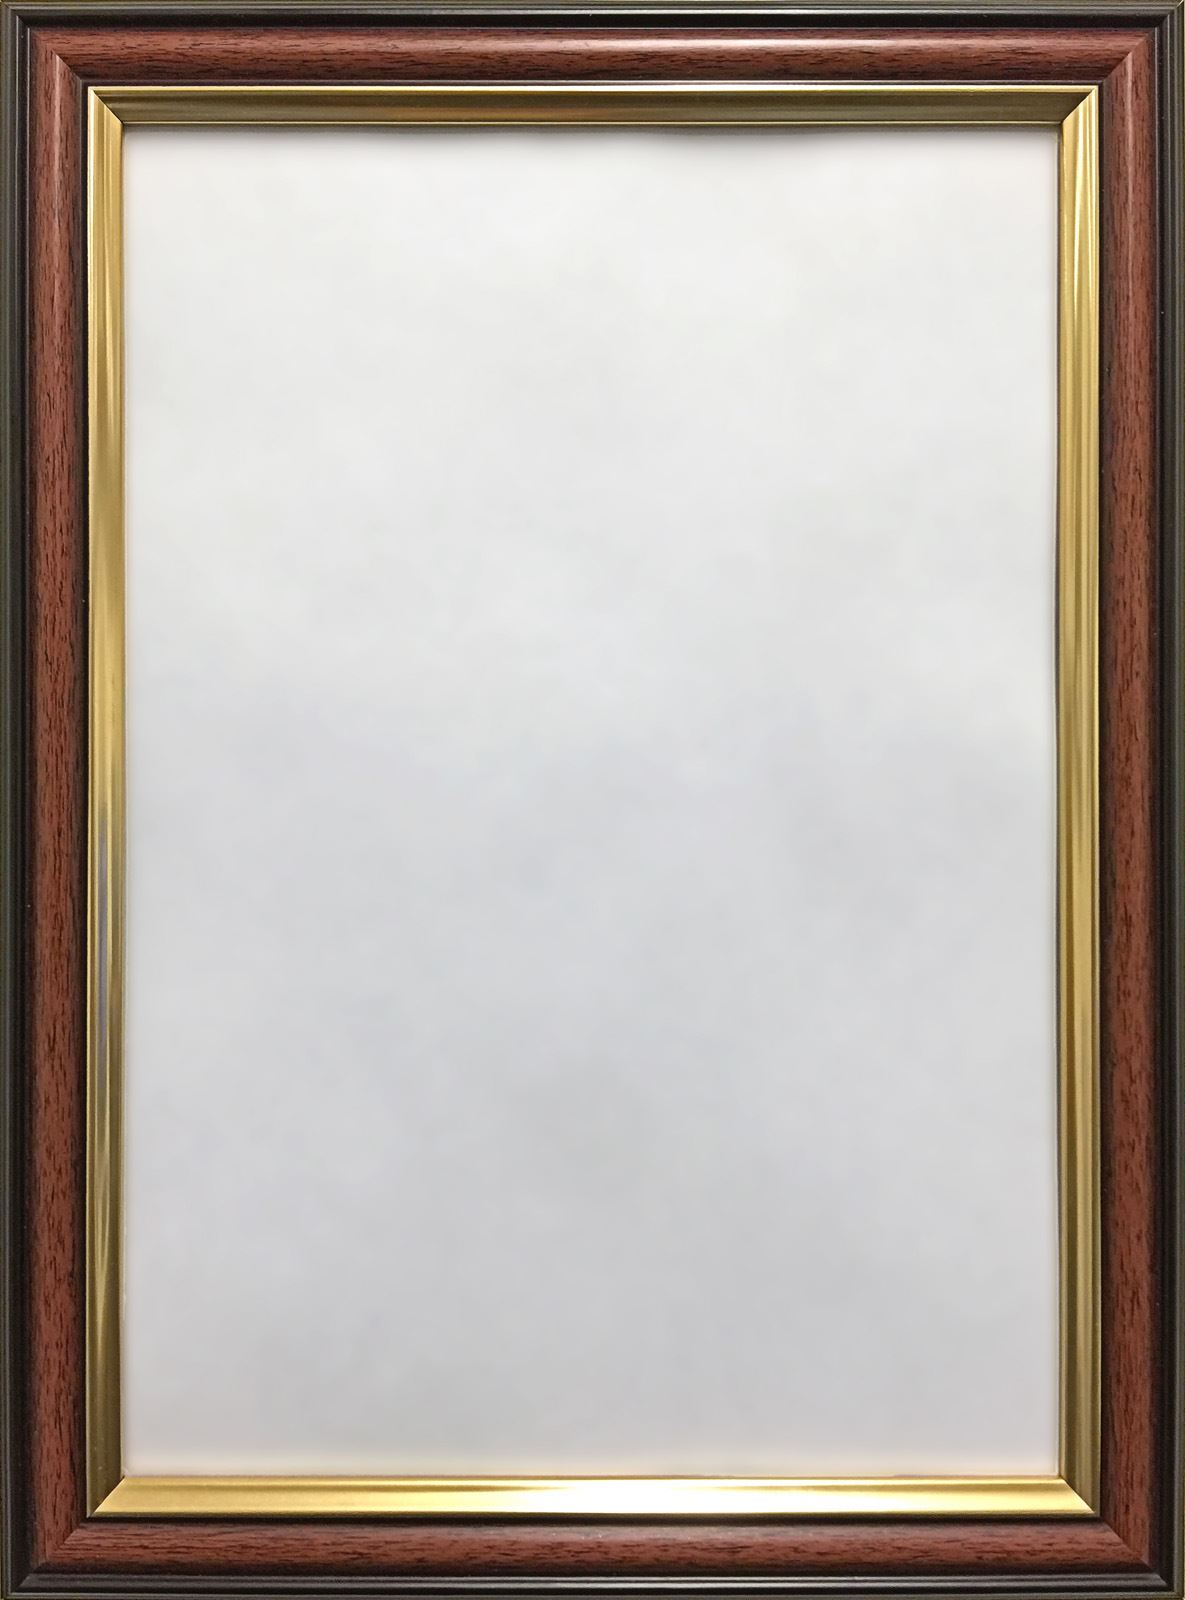 Mahogany Walnut with Gold Trim Photo Picture Frames Thin Moulding | eBay